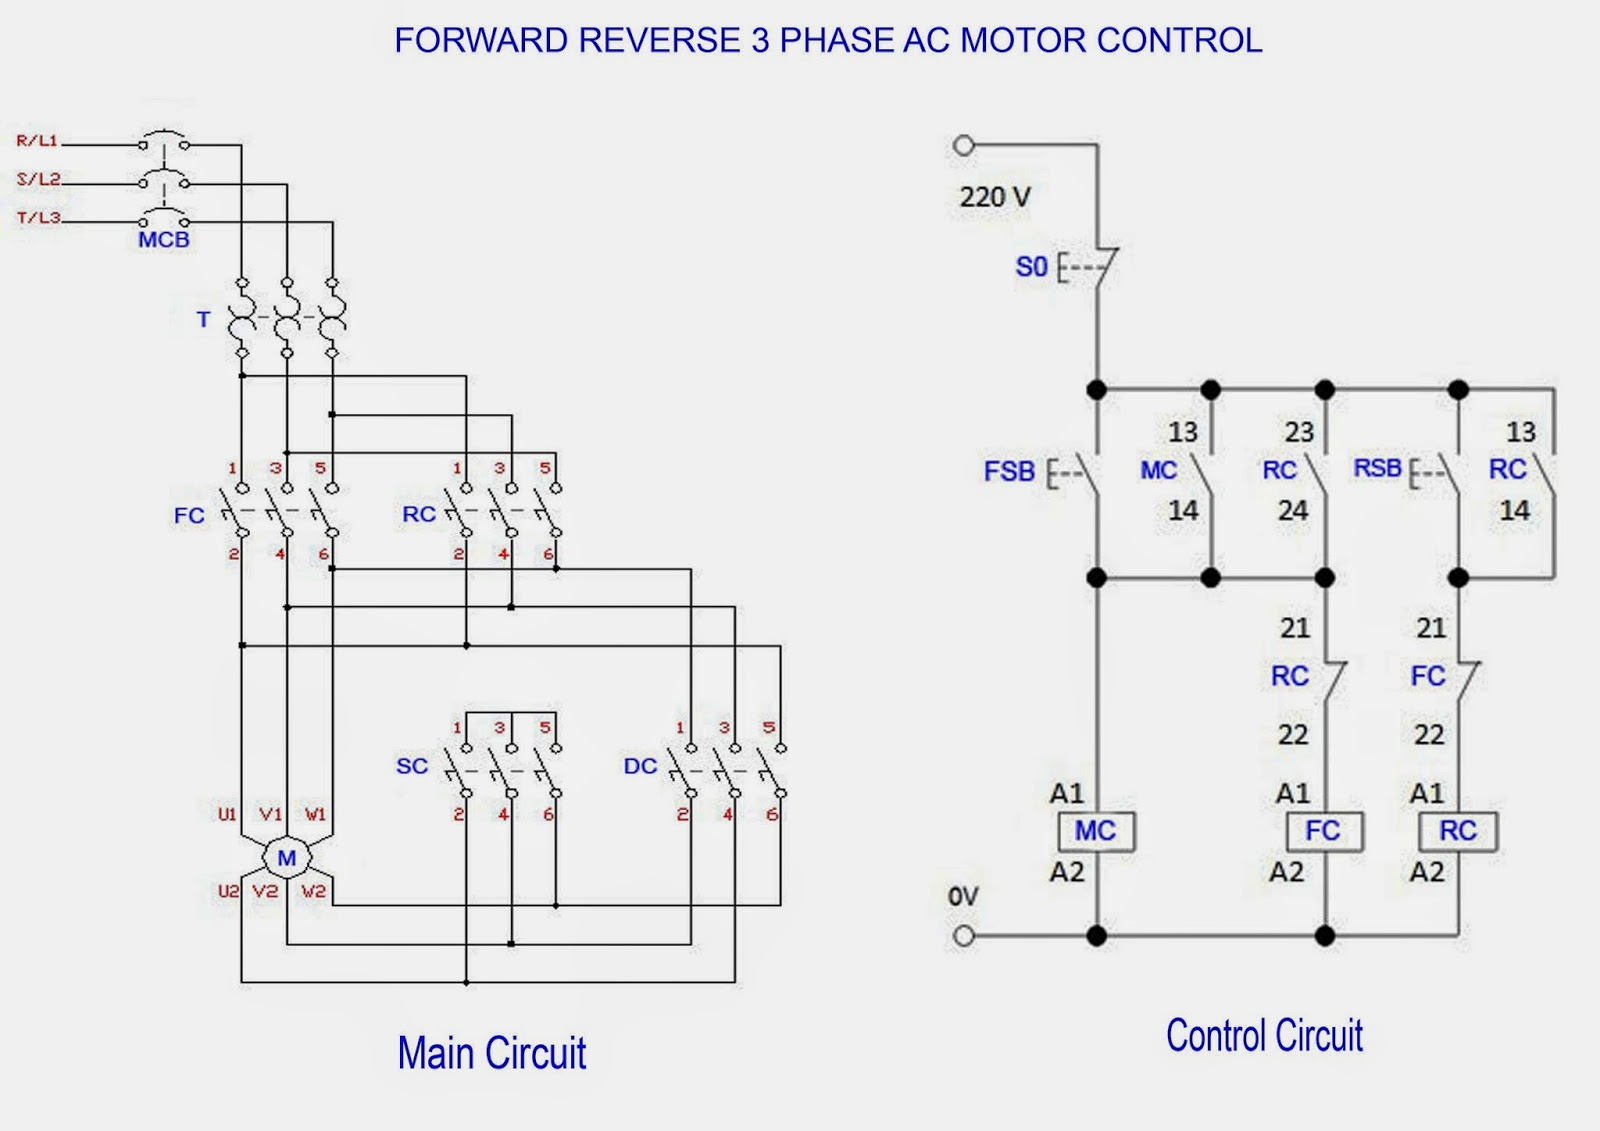 hight resolution of wiring diagram for forward reverse three phase motor wiring diagram toolbox